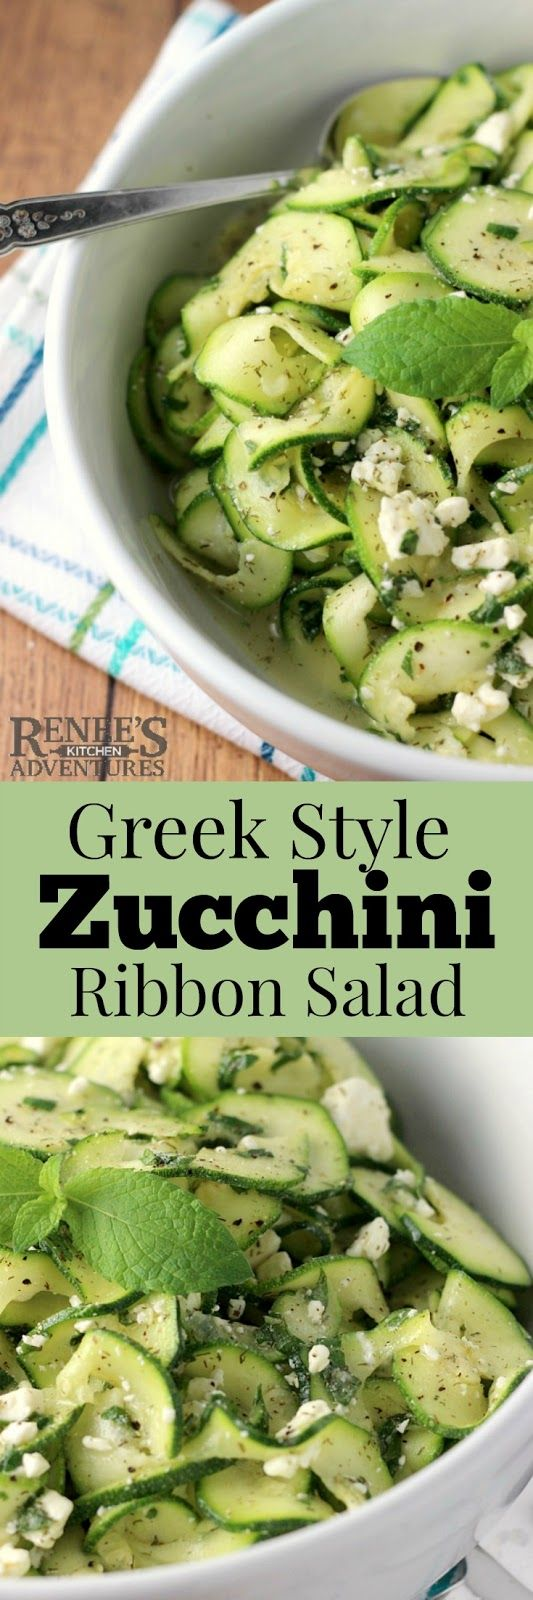 Zucchini Ribbon Salad on Pinterest | Zucchini Ribbons, Zucchini and ...